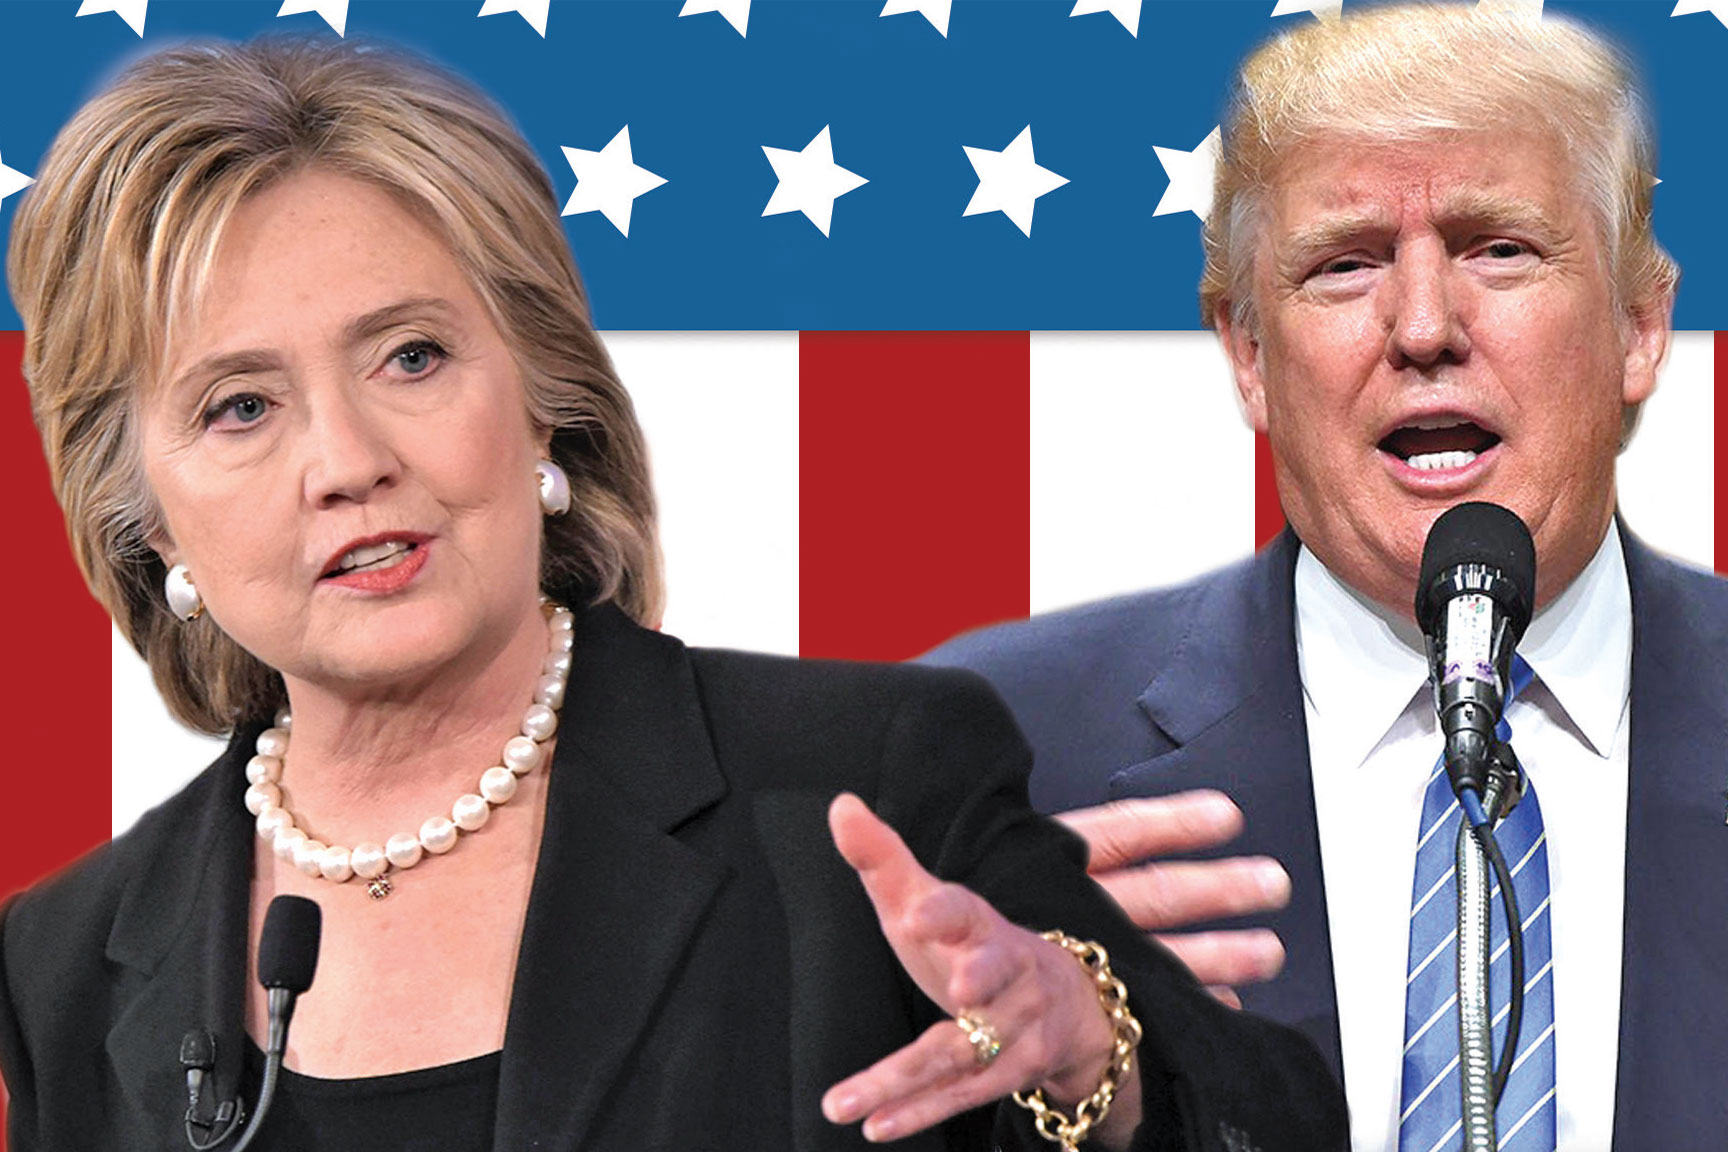 Hillary Clinton and Donald Trump meet for the first Presidential debate on Monday, September 26 at 9:00 p.m.